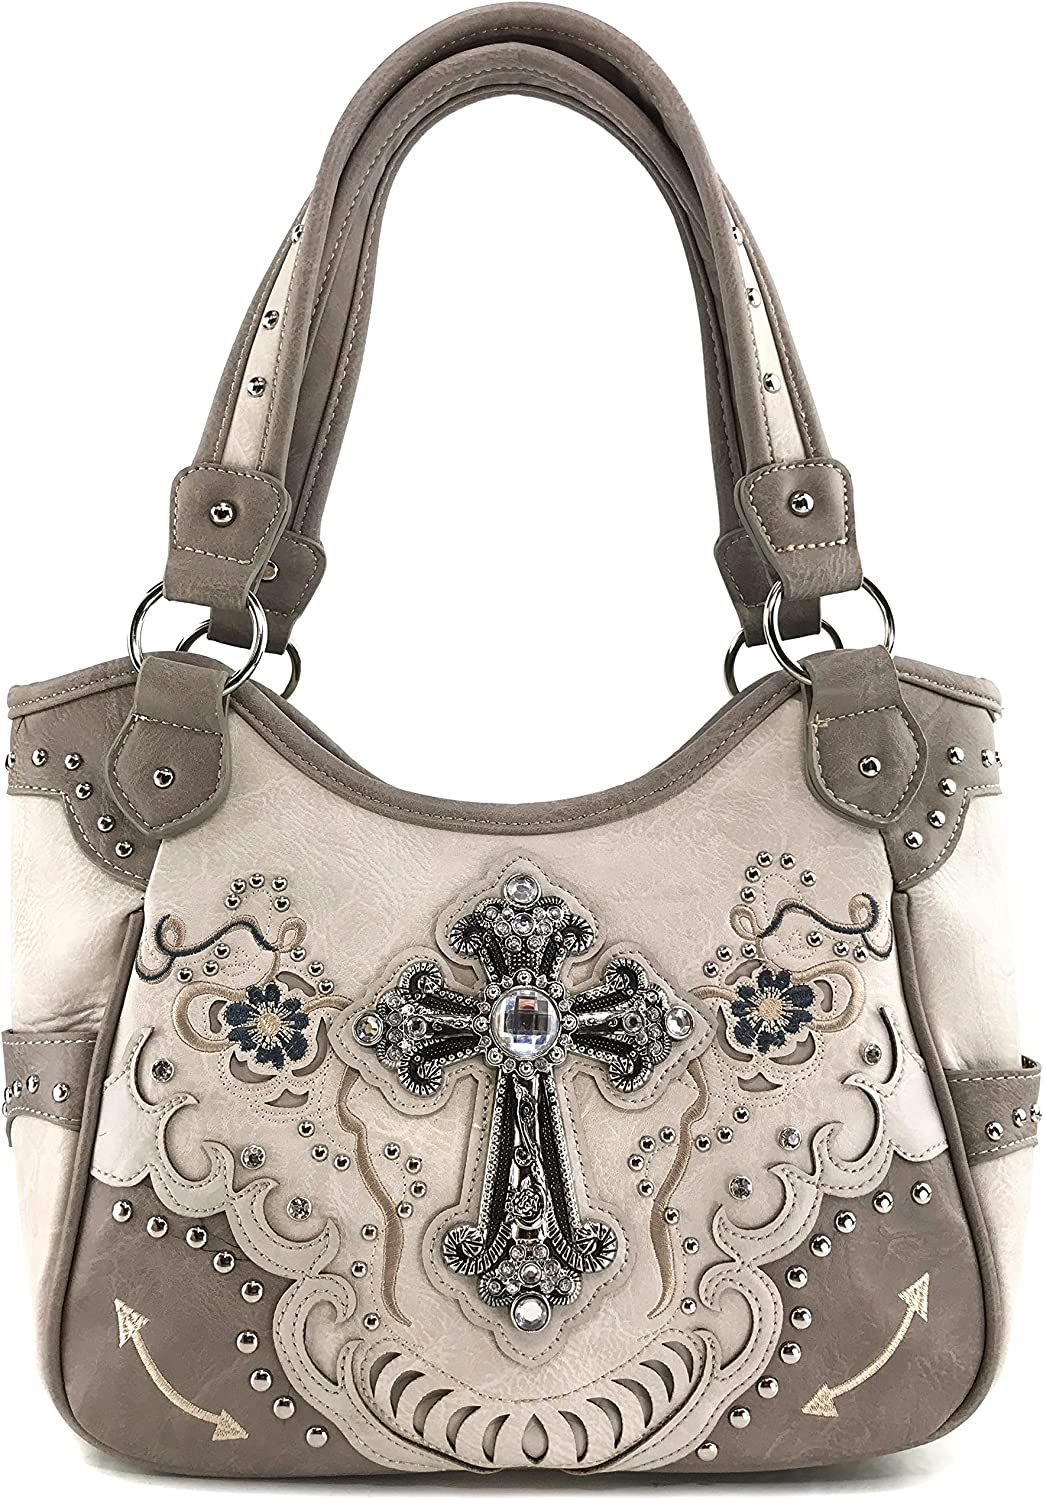 Justin West Cross Limited time sale Floral Embroidered CCW Studded Carry Now on sale Concealed